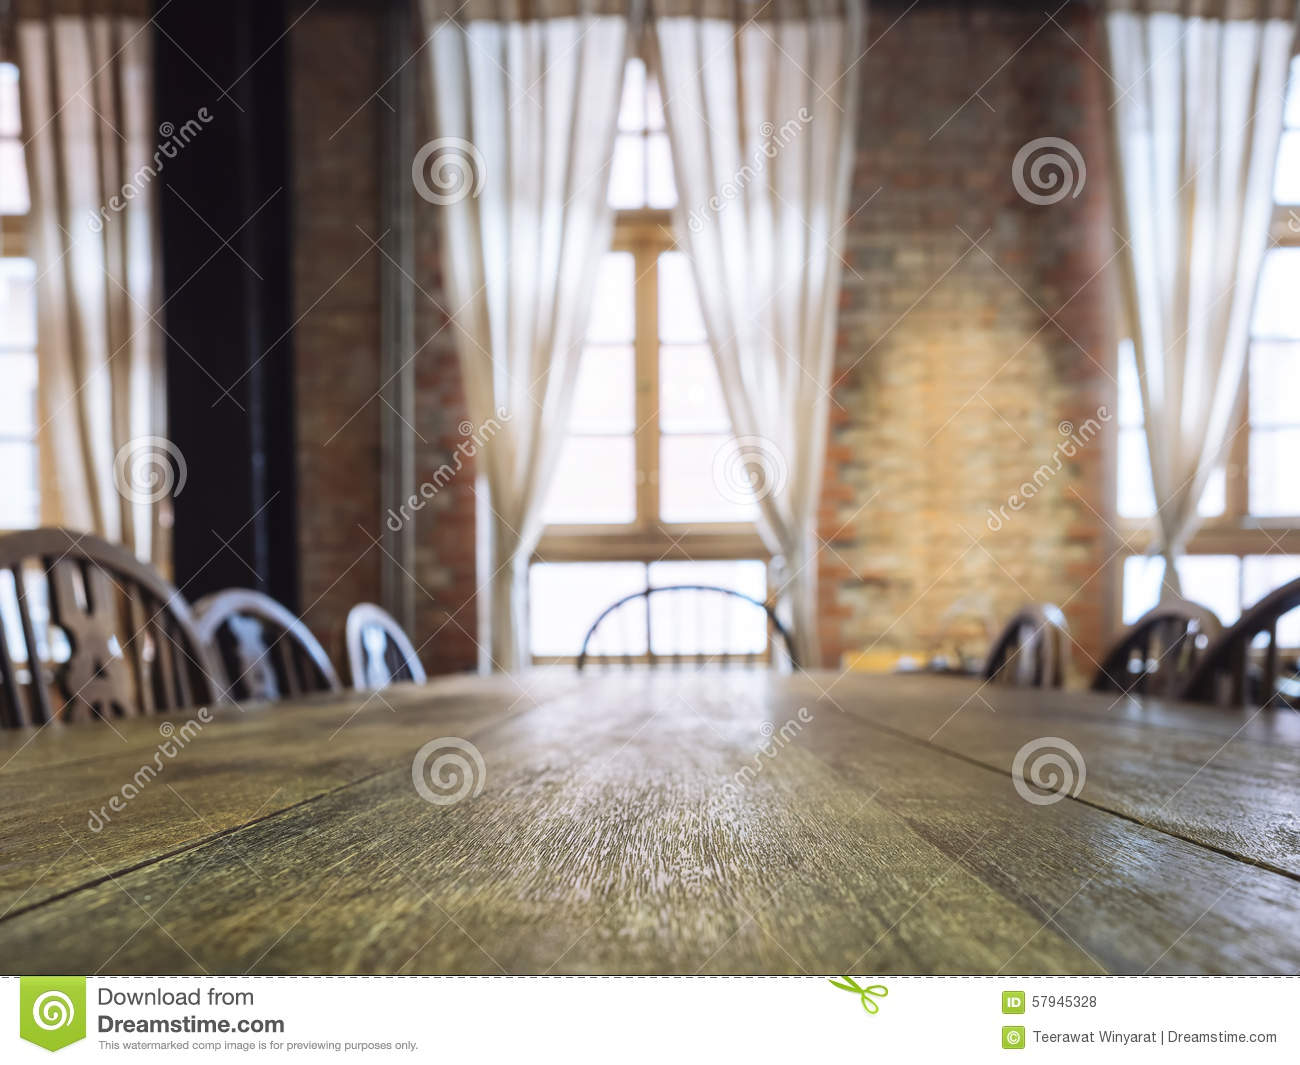 Dinner table background - Royalty Free Stock Photo